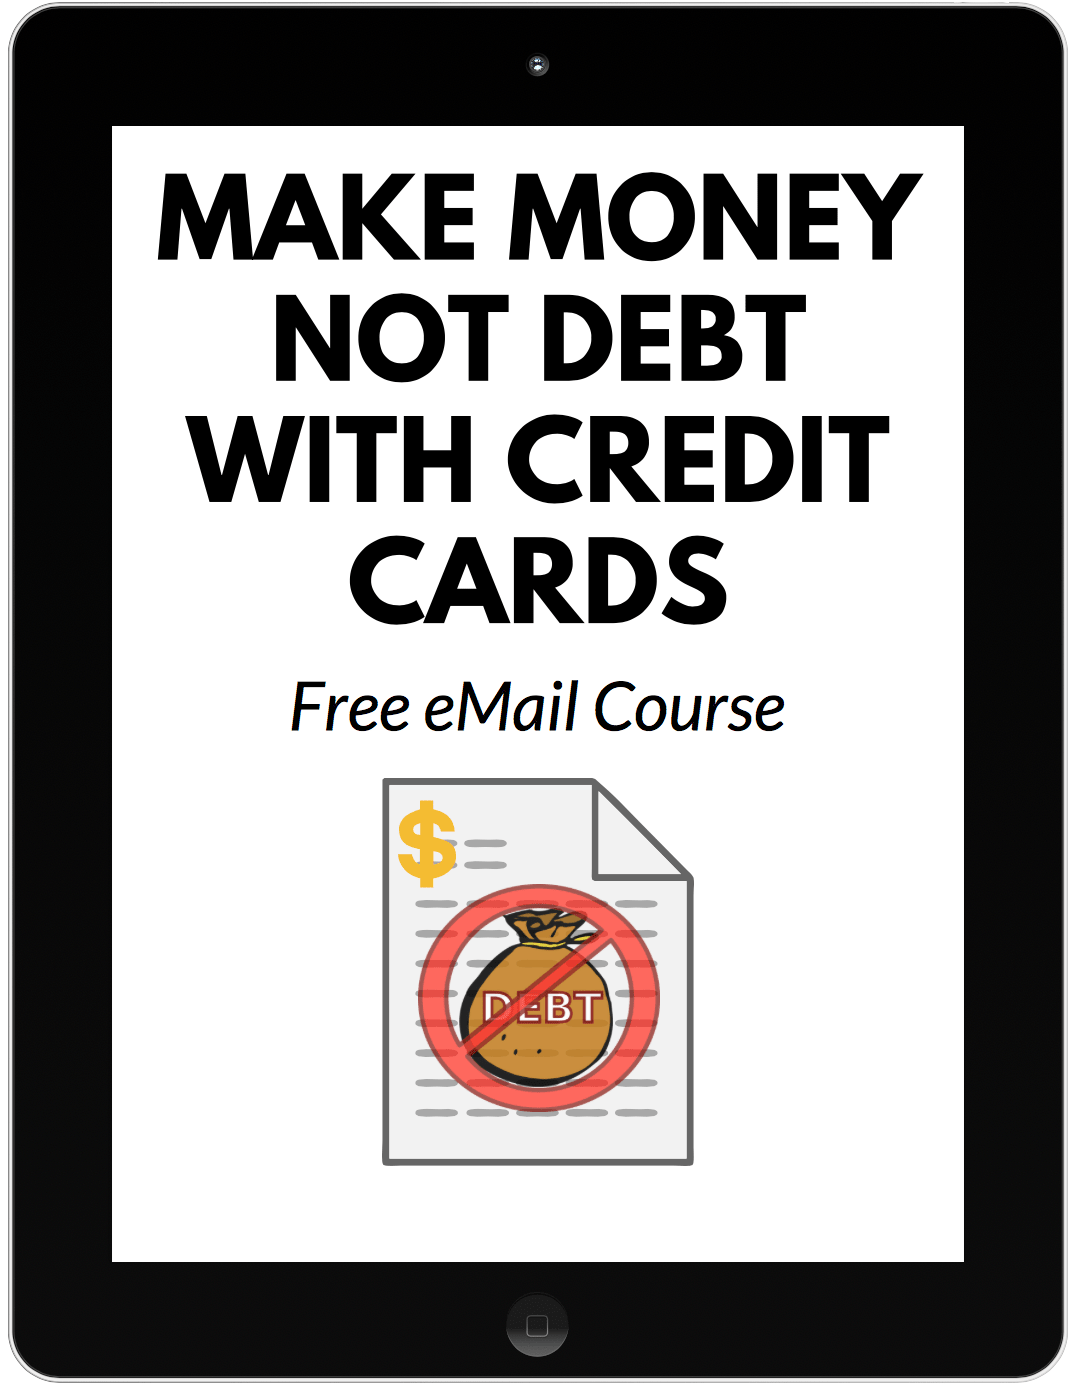 credit card debt, debt payoff, budget, budgeting, budgeting tips, make money, debt, how to payoff debt, make money with credit cards